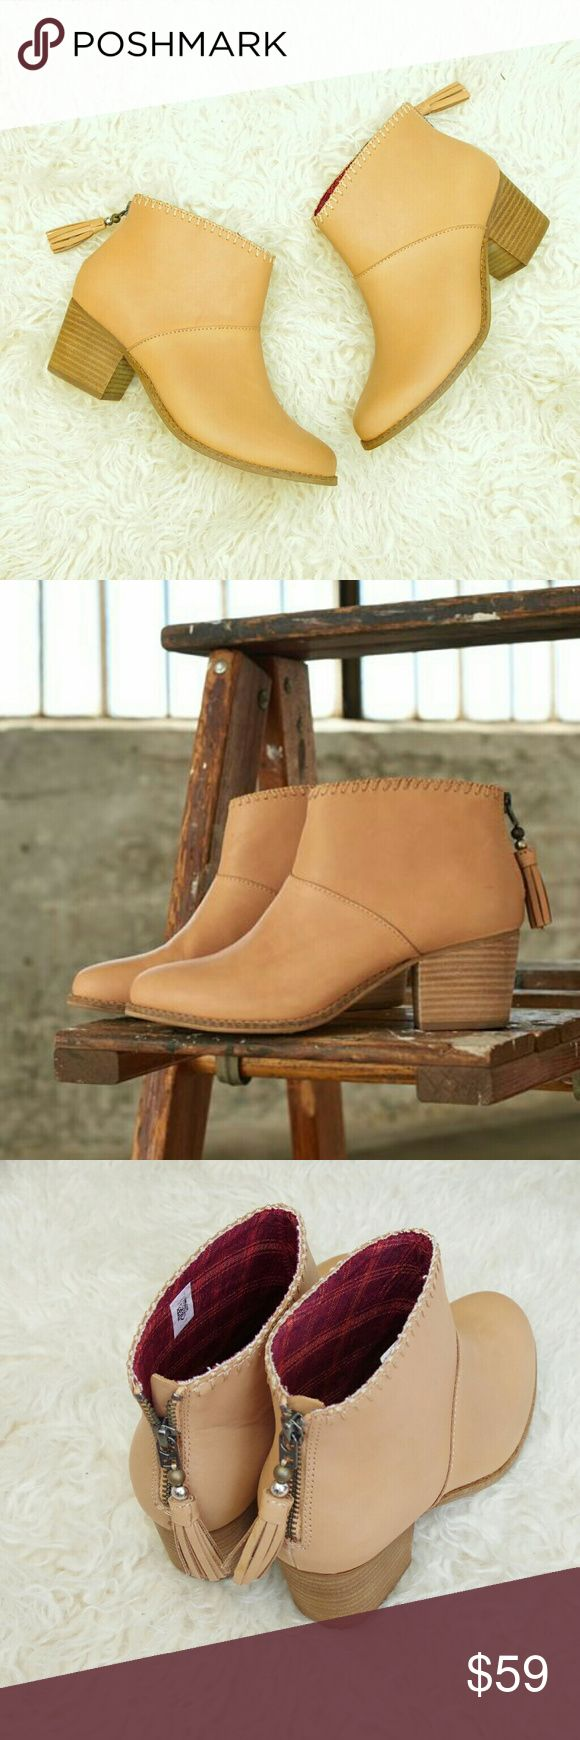 NEW TOMS Leila Vachetta Tan Leather Boots Booties Brand new full grain genuine leather booties from TOMS.  Tan vachetta color, stacked heel, and zipper back with fringe tassel.  ADORABLE. Look super cute with spring/summer dresses.  Brand new without box. TOMS Shoes Ankle Boots & Booties